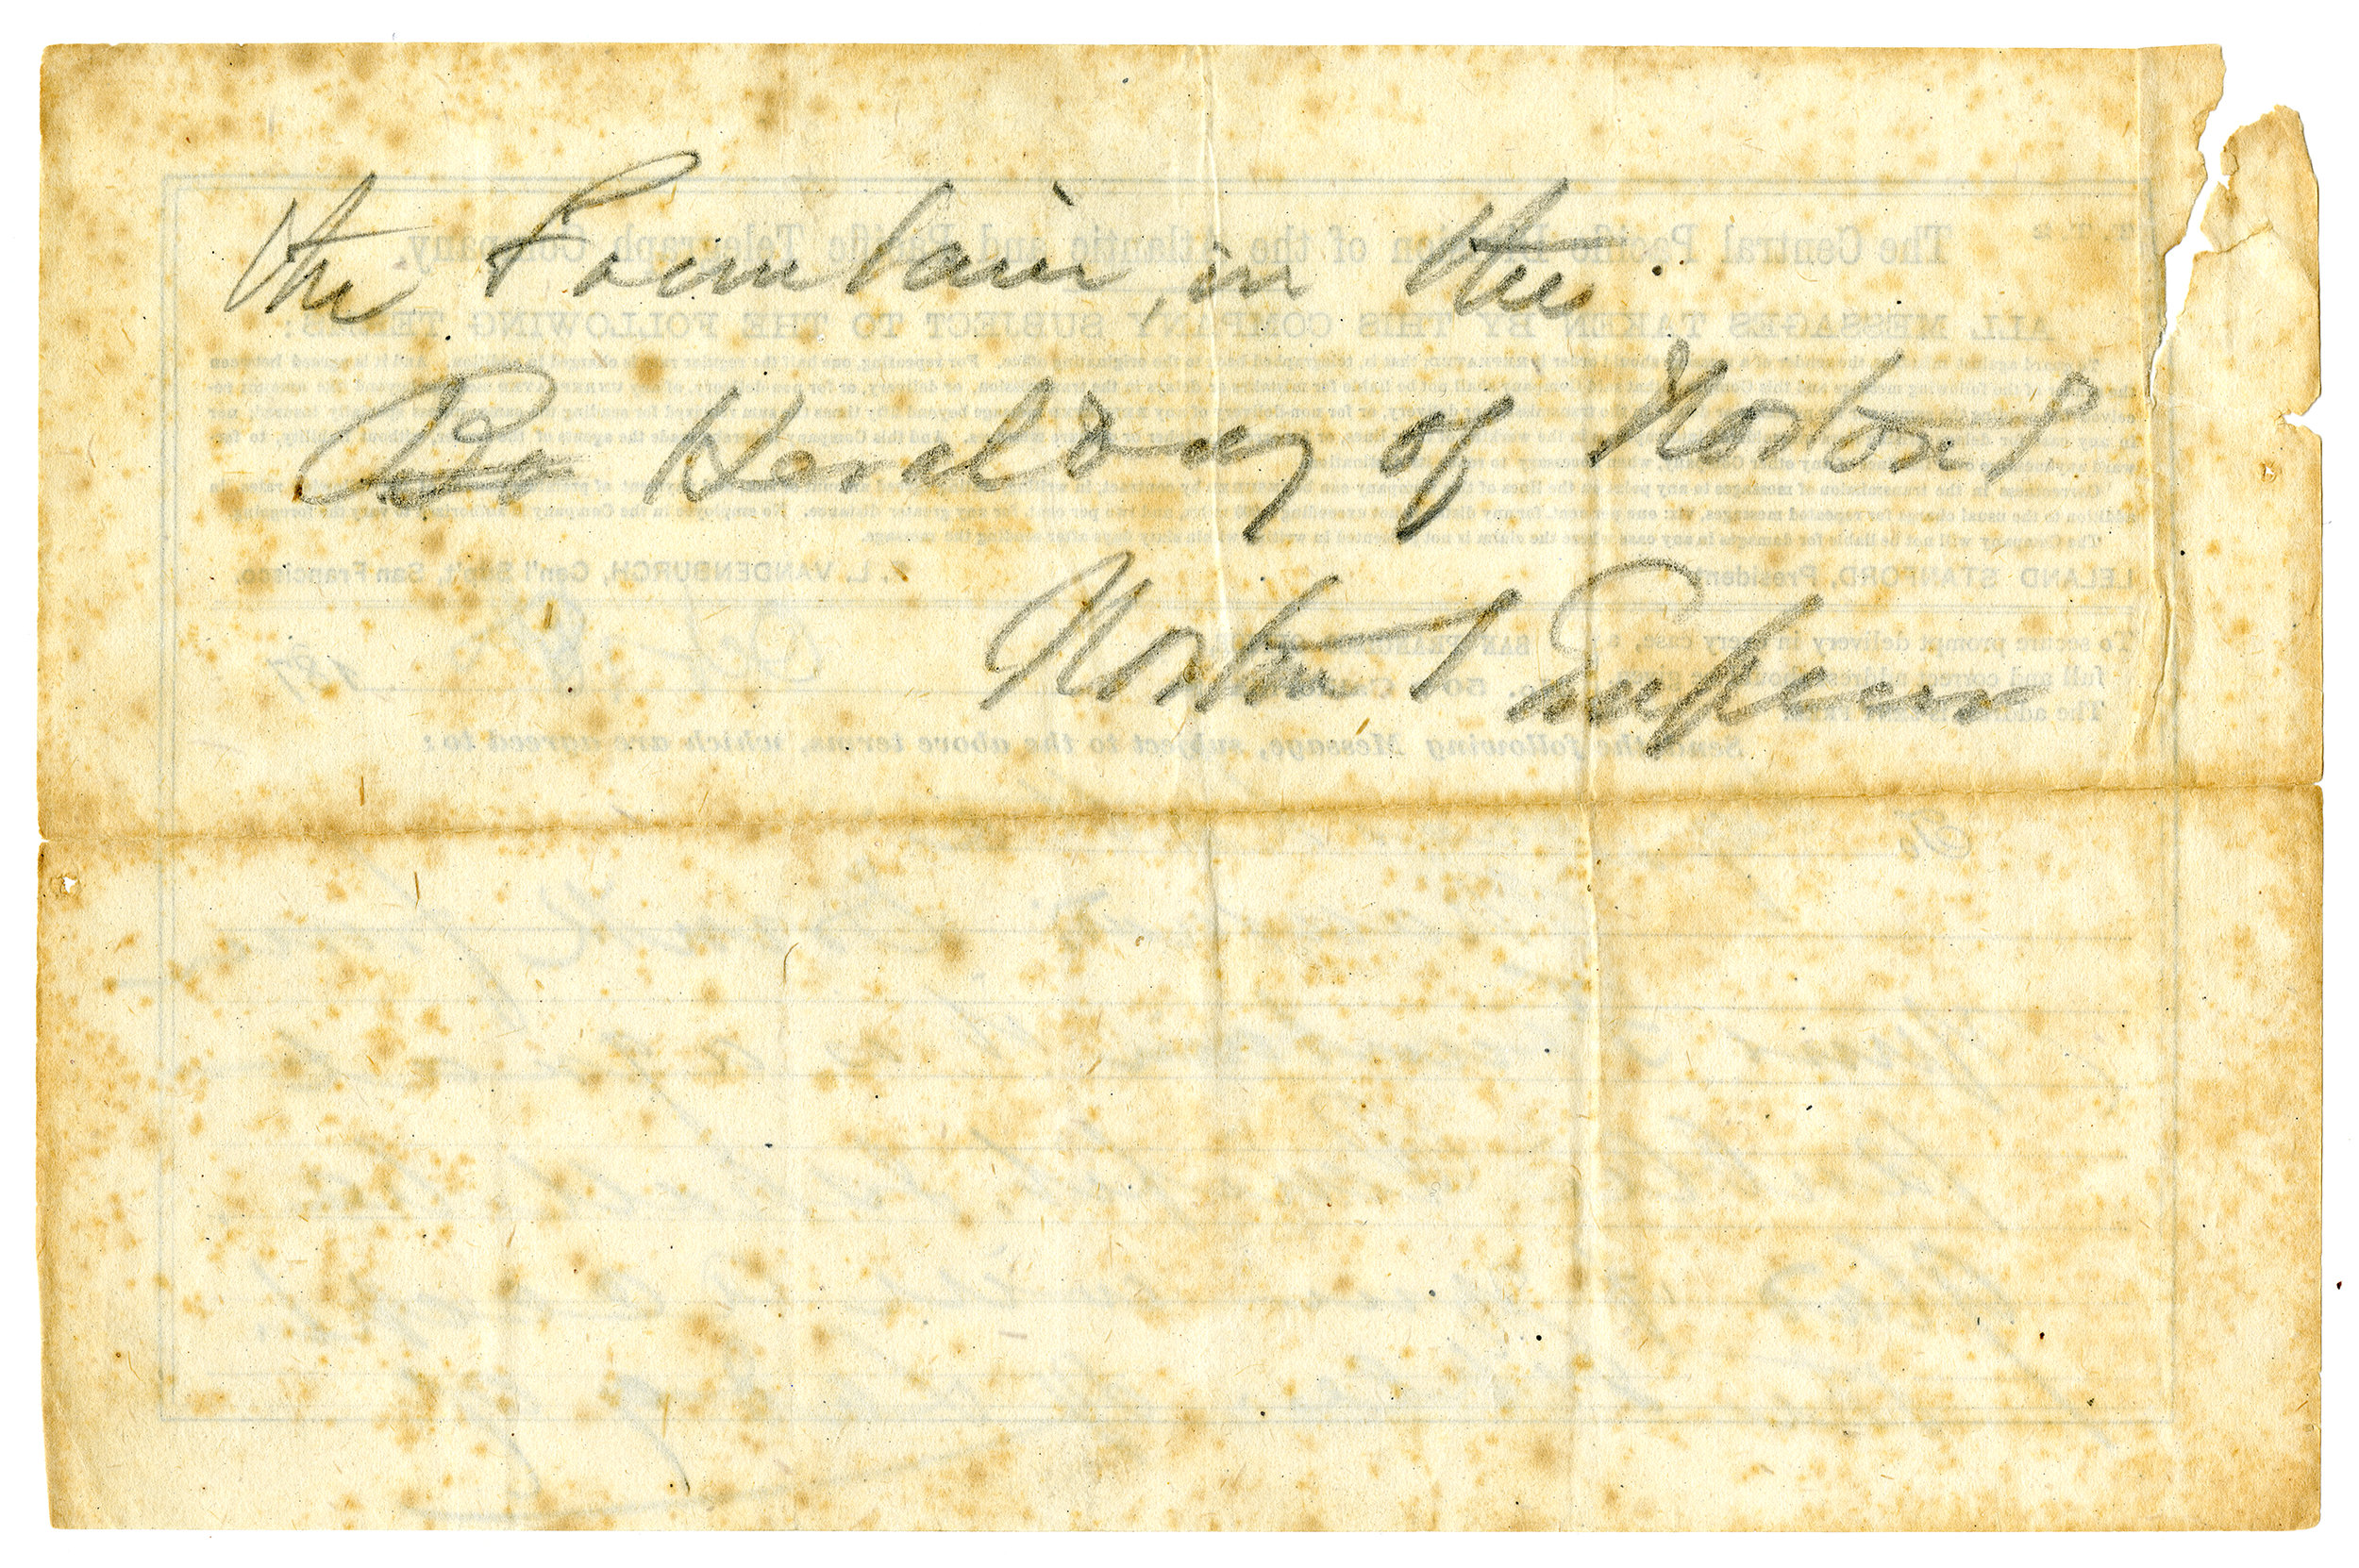 Telegraph to Lotta Crabtree , 18 October, Emperor Norton telegrams and promissory notes, 1872–1879, undated, MS Vault 73, California Historical Society, MS-Vault-73_001a (front) and MS-Vault-73_001b (back).